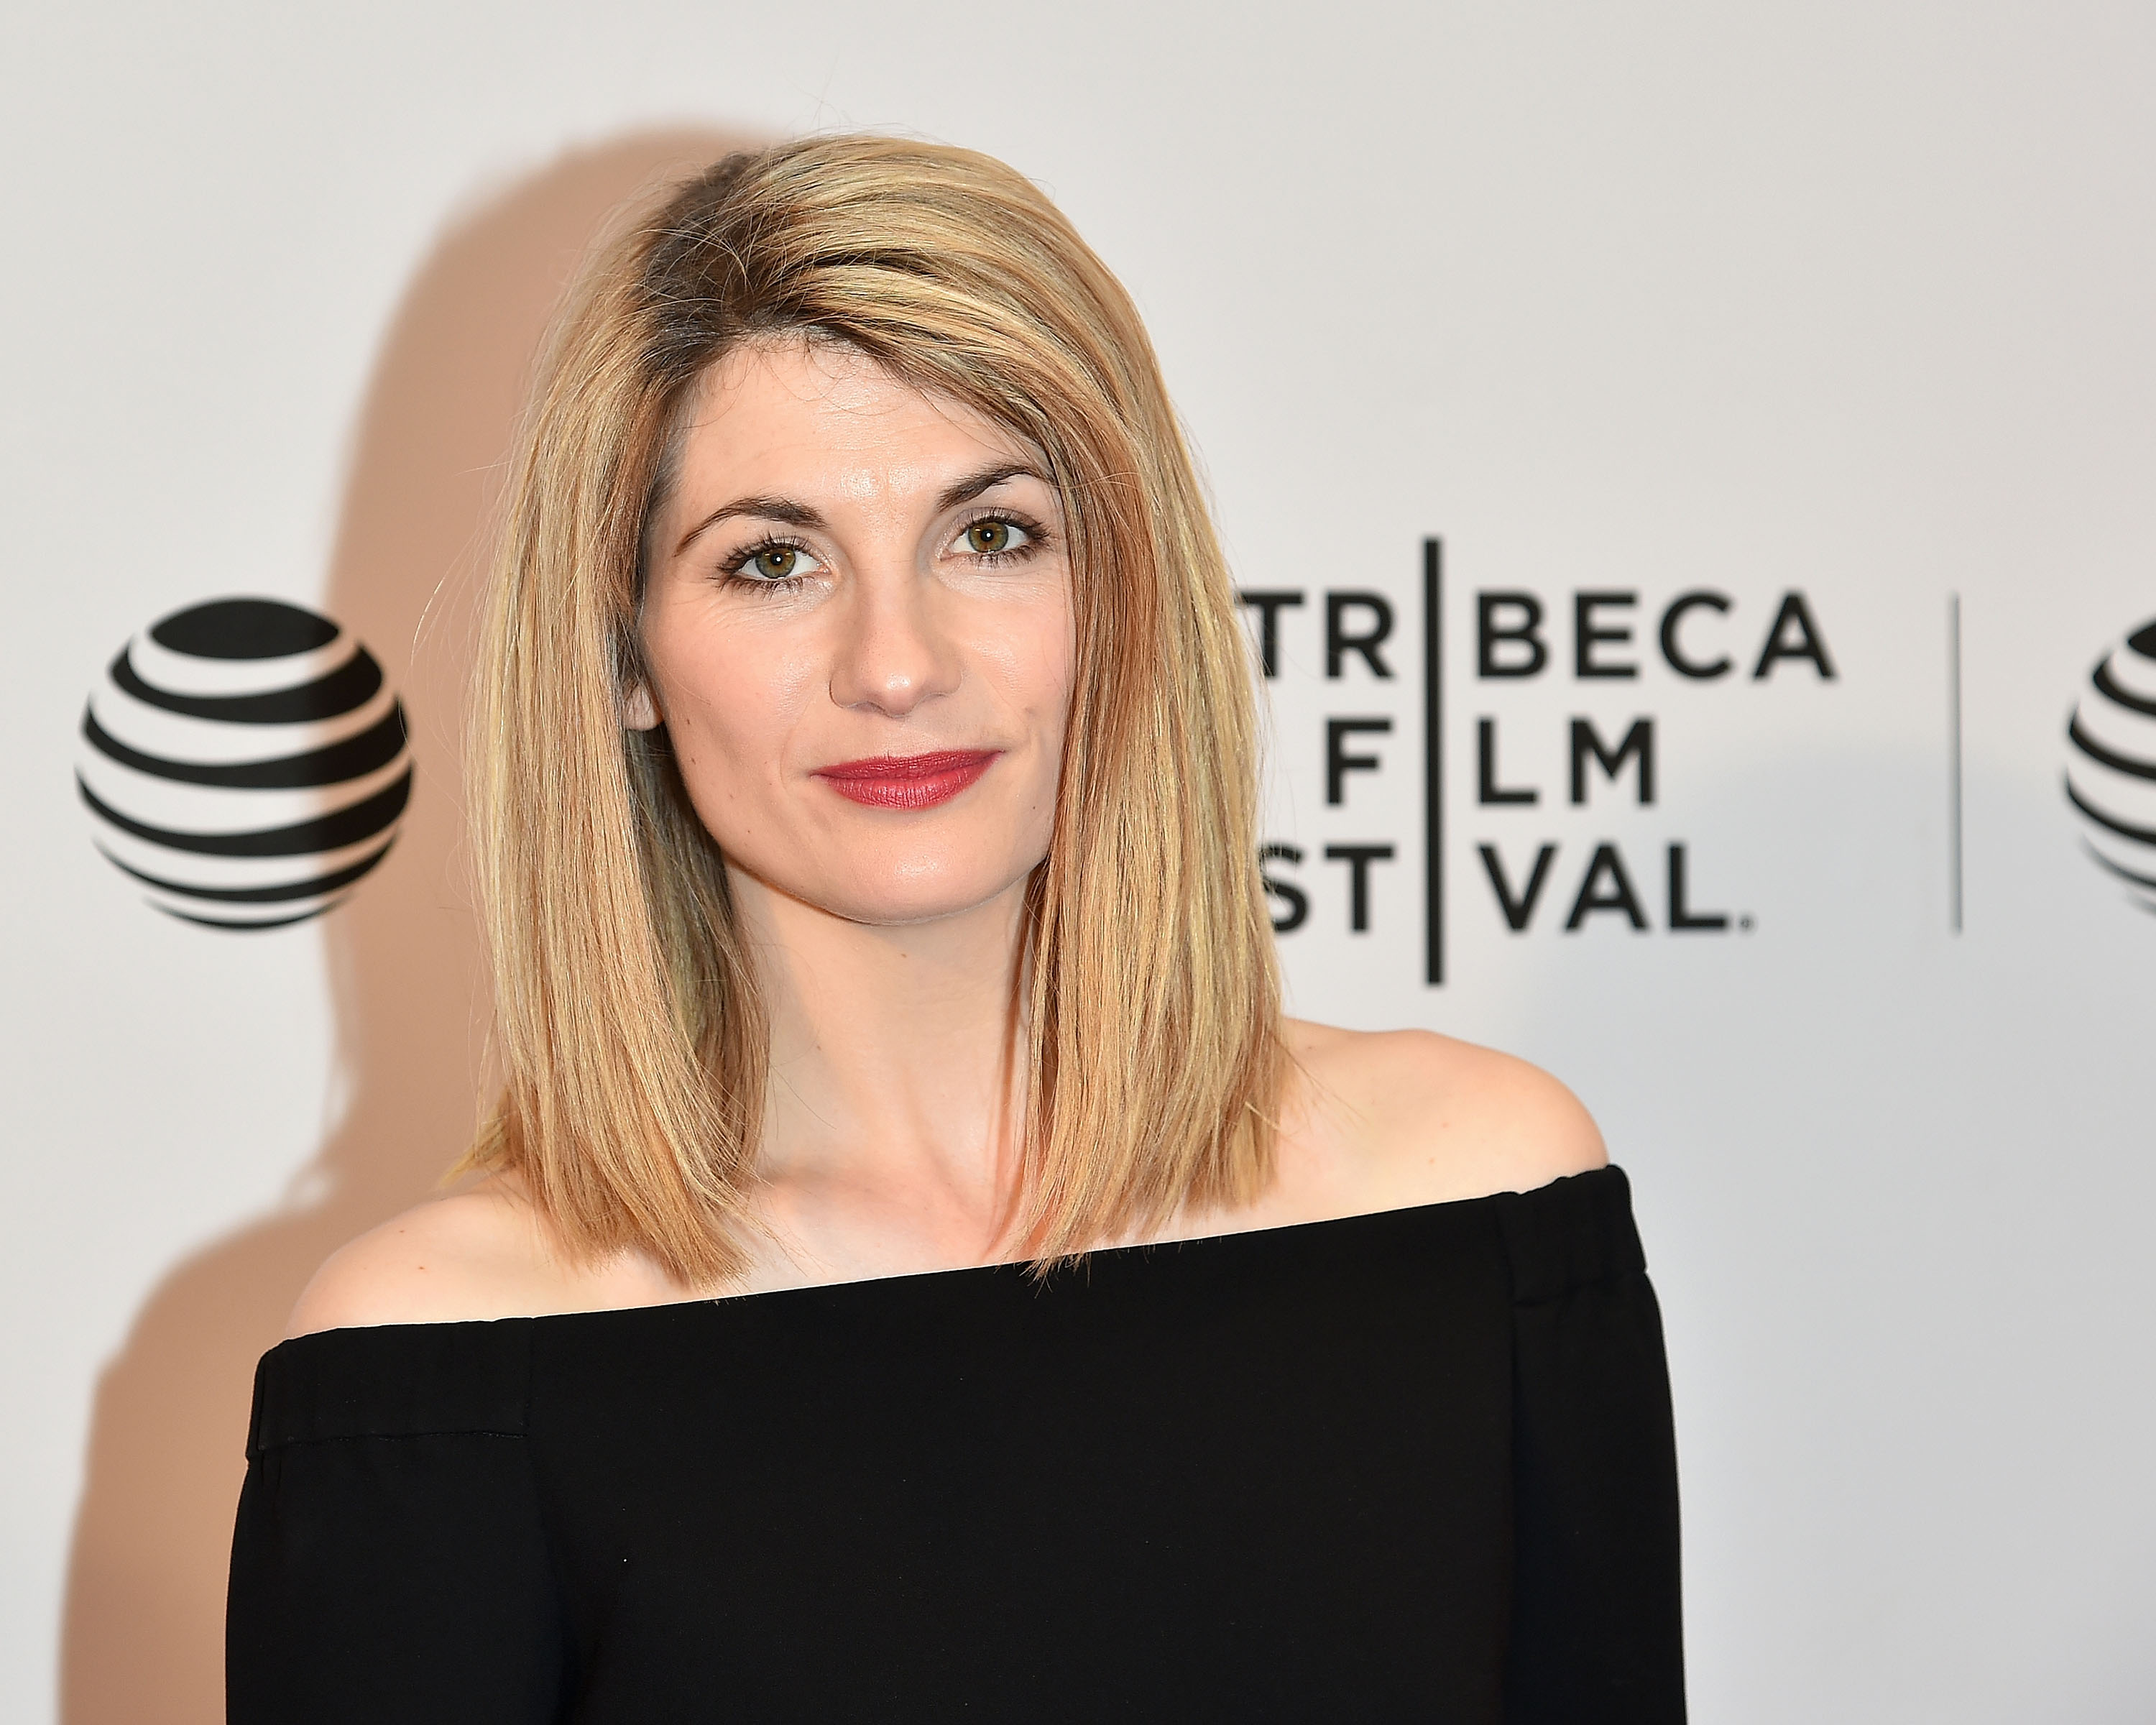 Jodie-Whittaker-Long-Hair